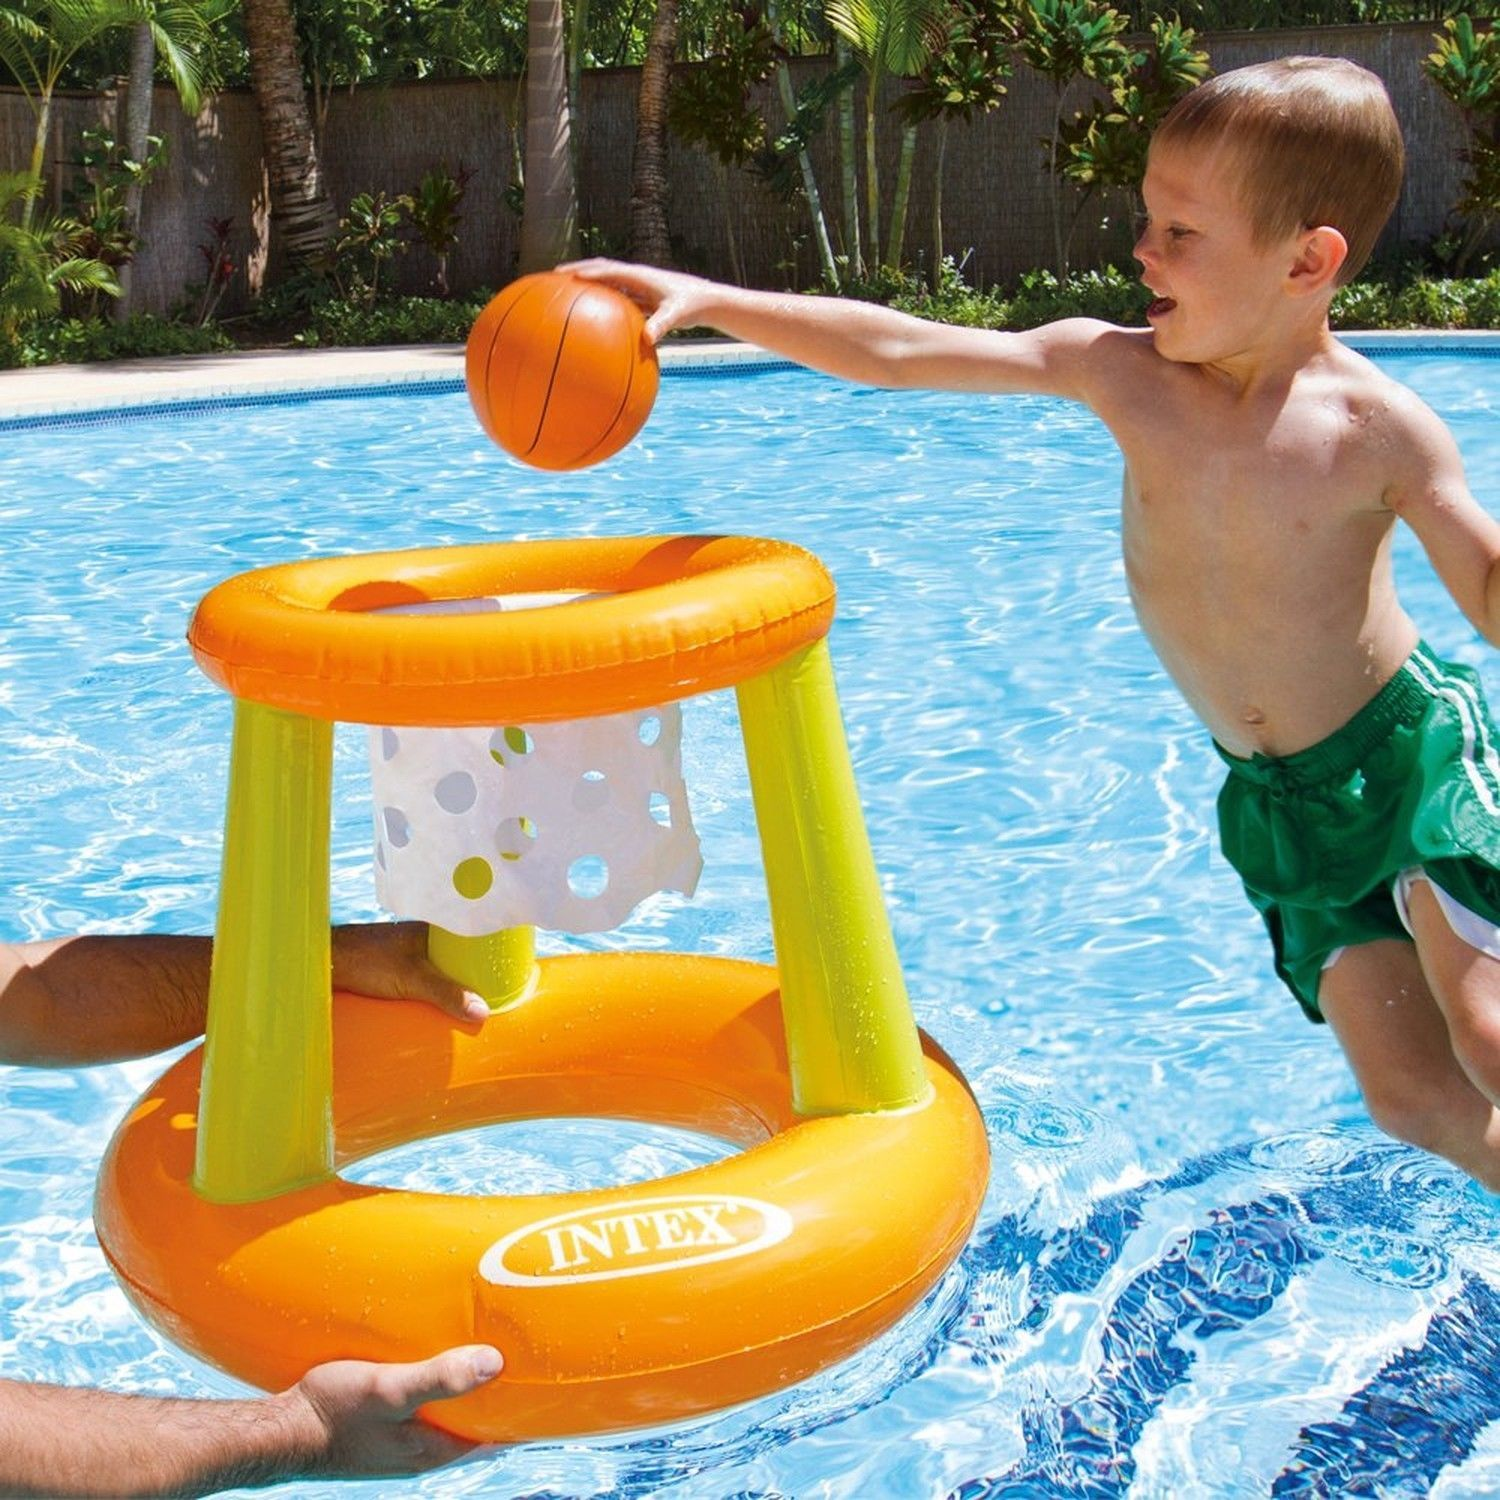 Details about Intex Floating Hoops Basketball Game Water Toy